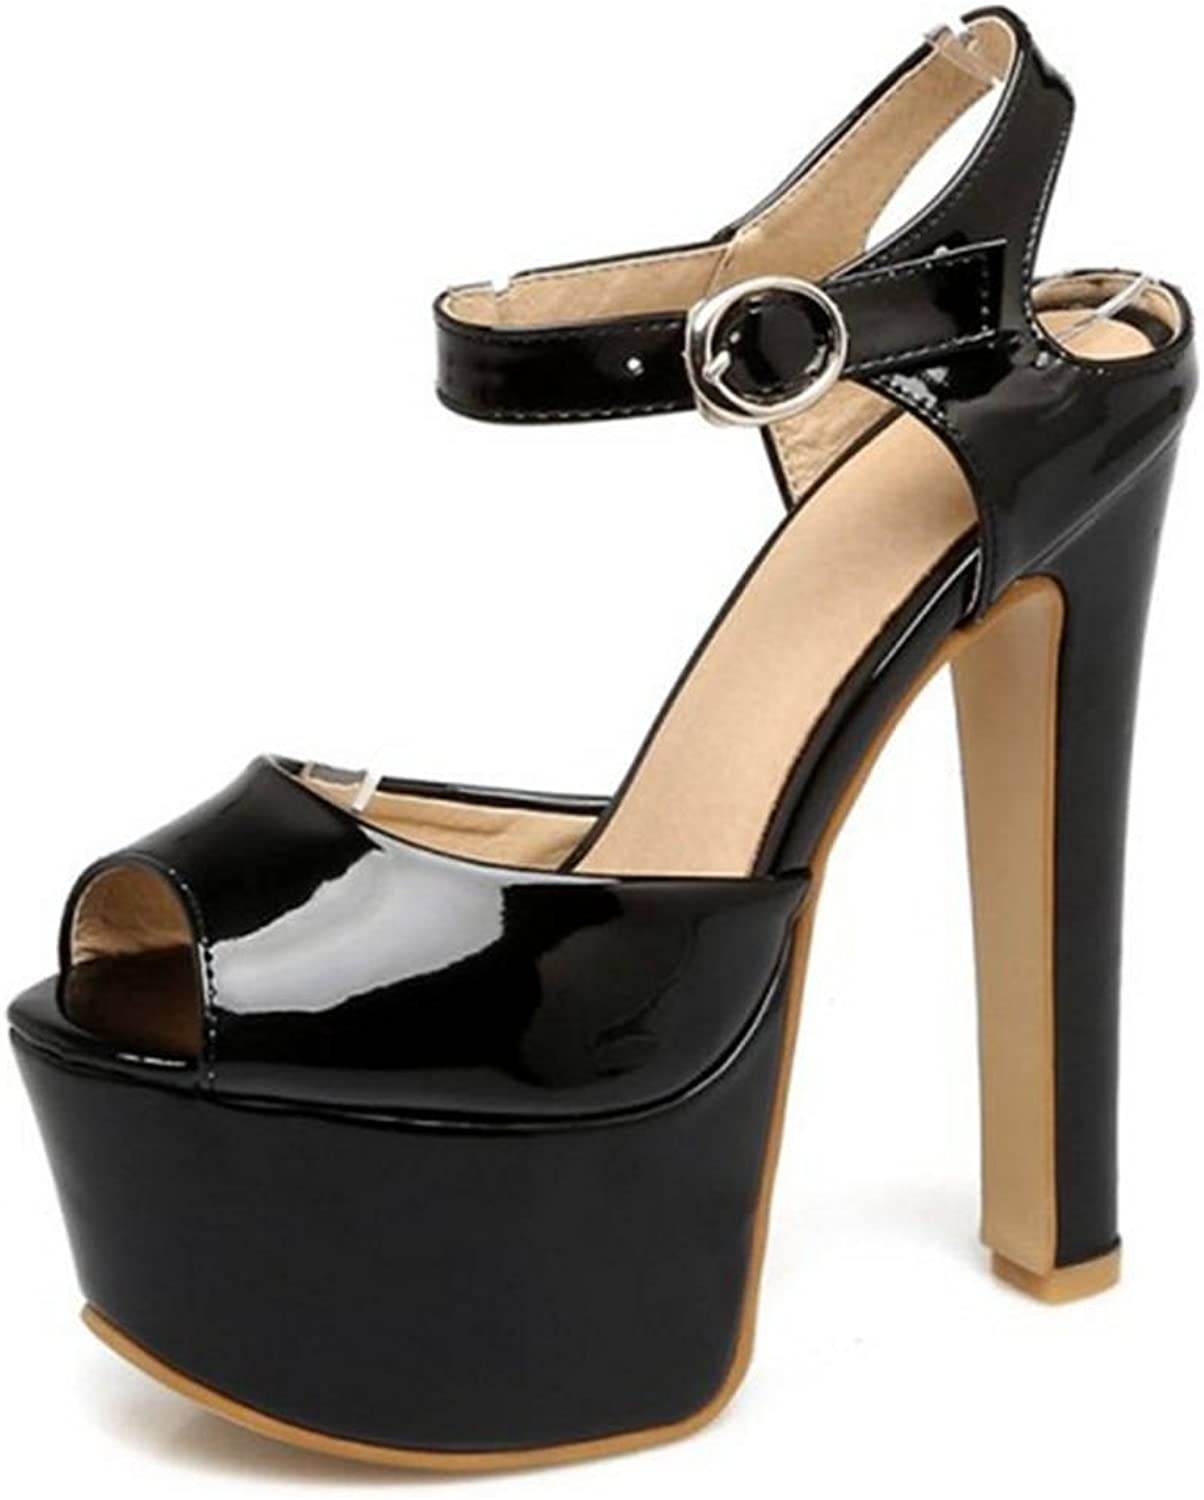 CUTEHEELS Sexy Heels with Stiletto and Thick Platform Wedding Party shoes with Large for Evening Party